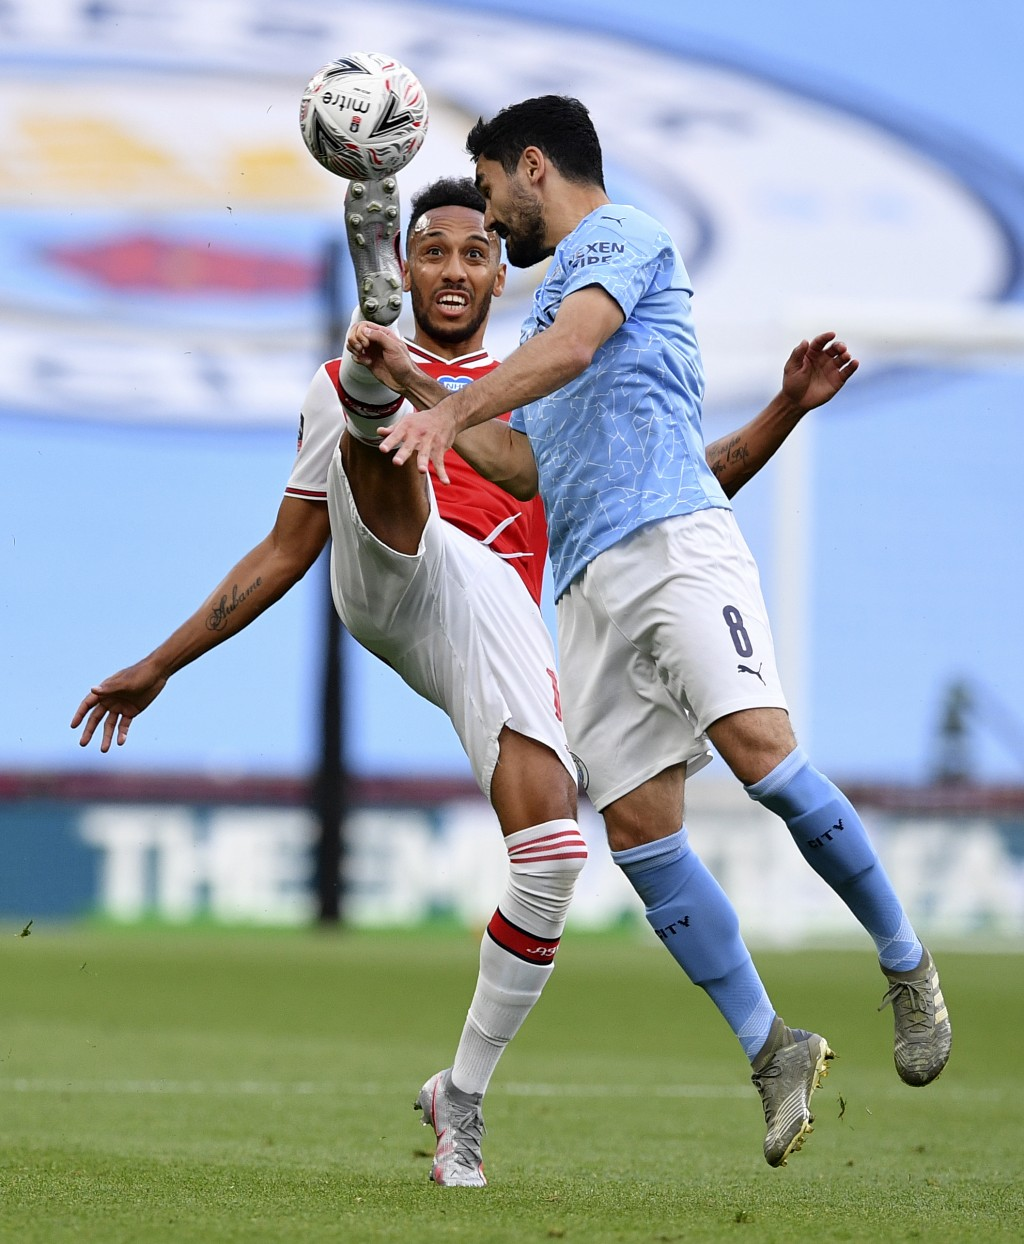 Arsenal's Pierre-Emerick Aubameyang, left, kicks the ball away from Manchester City's Ilkay Gundogan during the FA Cup semifinal soccer match between ...